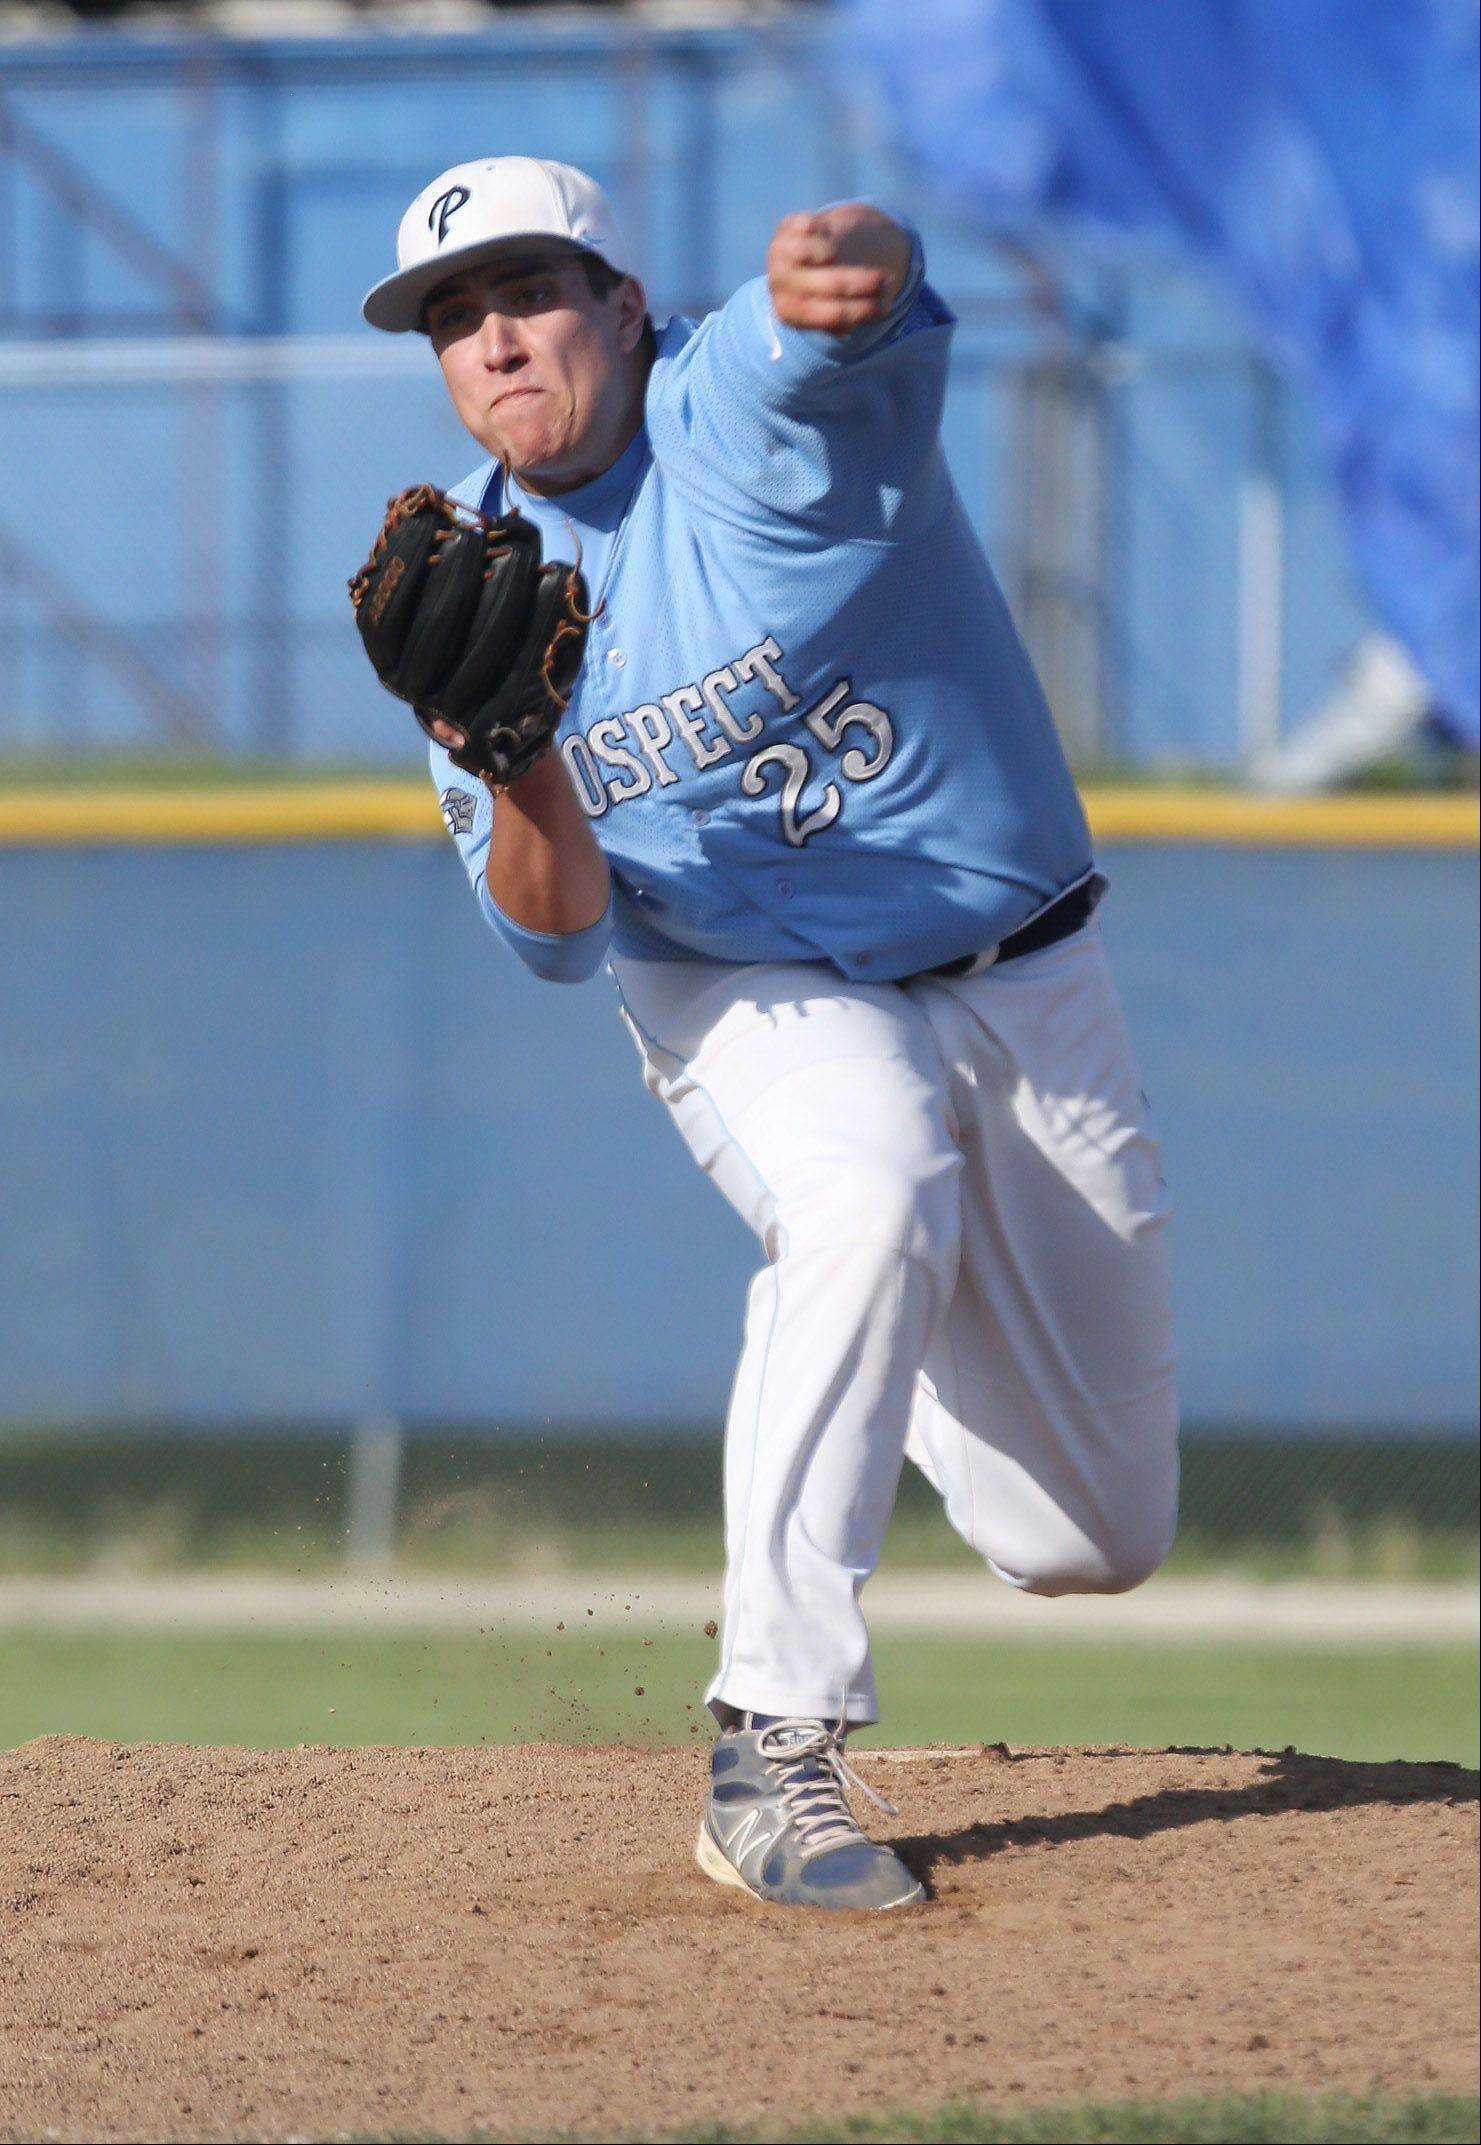 Prospect pitcher Zach Smith delivers during the Class 4A regional play-in game at Lake Zurich on Monday.